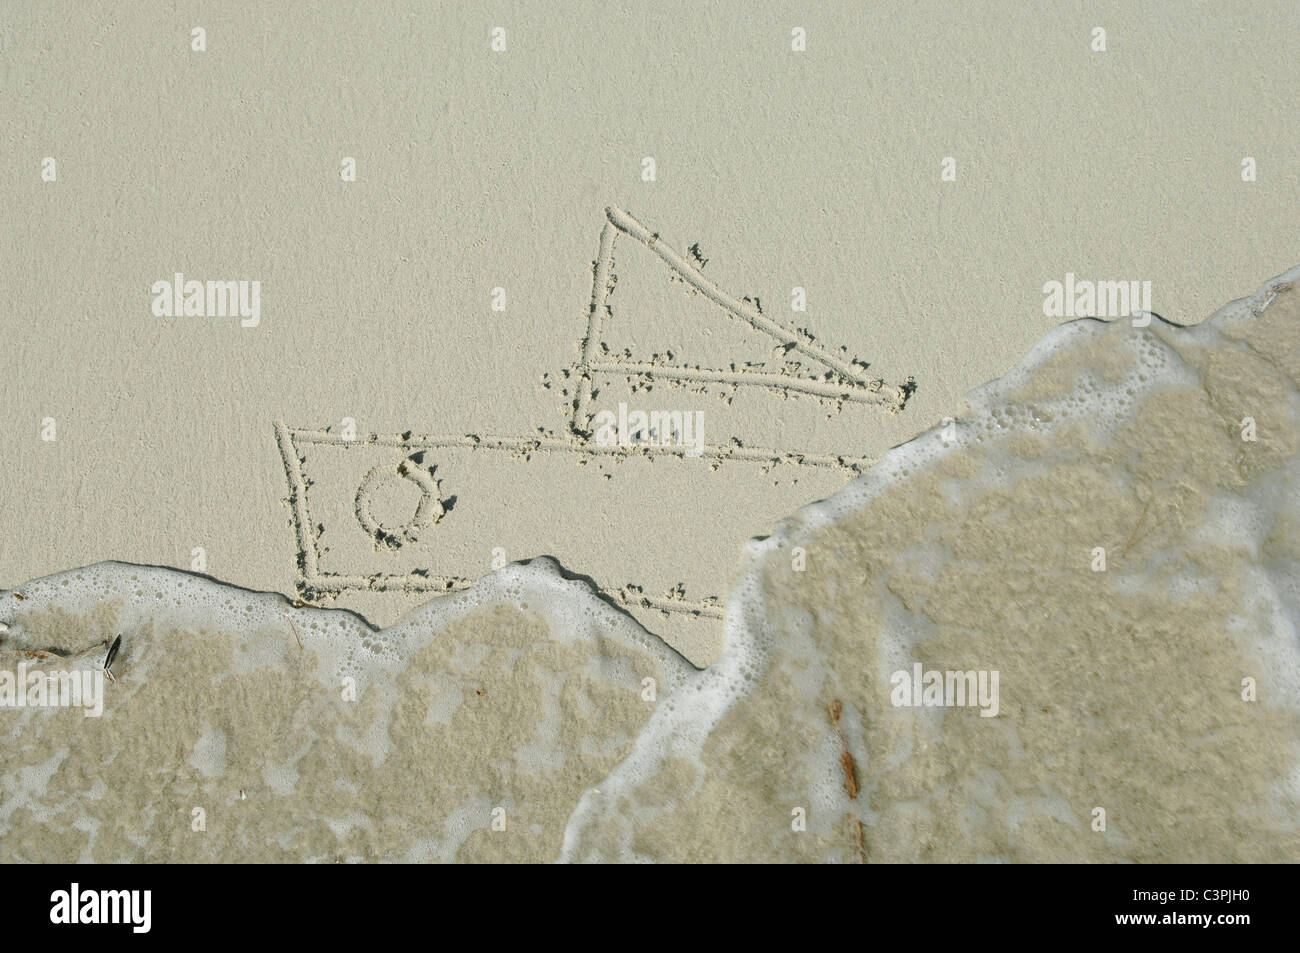 Ship drawn in sand on beach by sea. - Stock Image